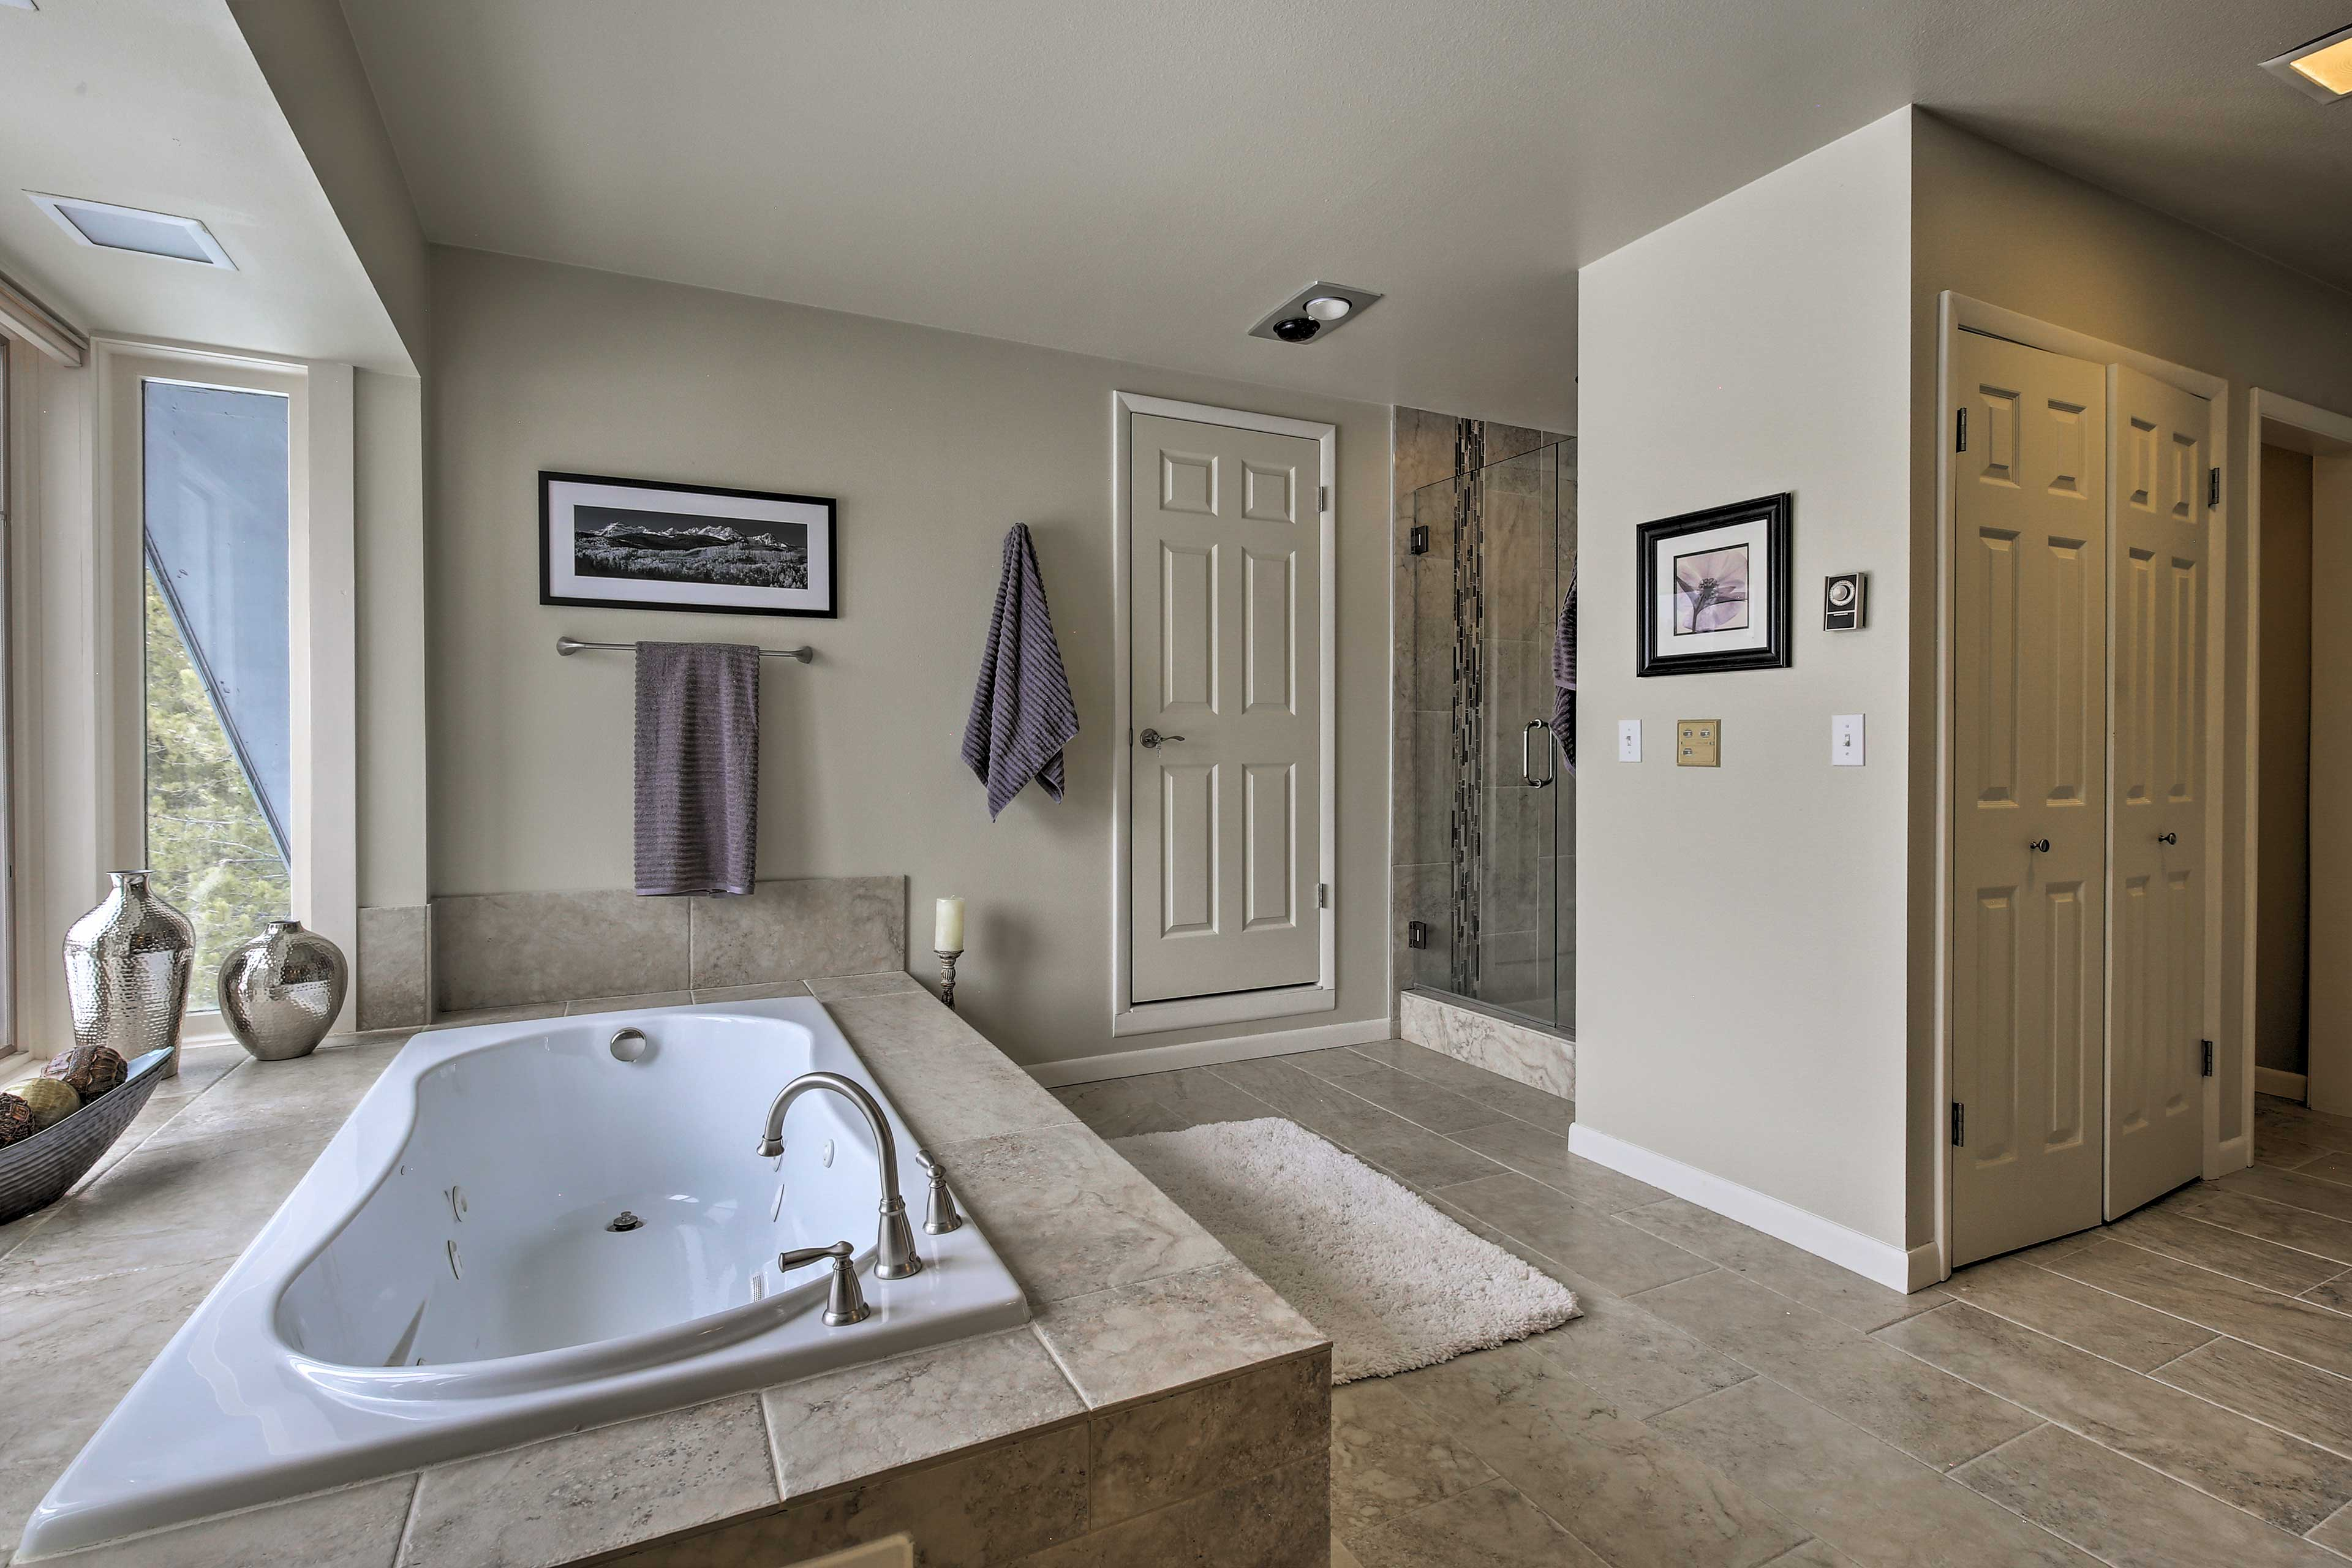 Enjoy a soothing soak in the jetted tub.